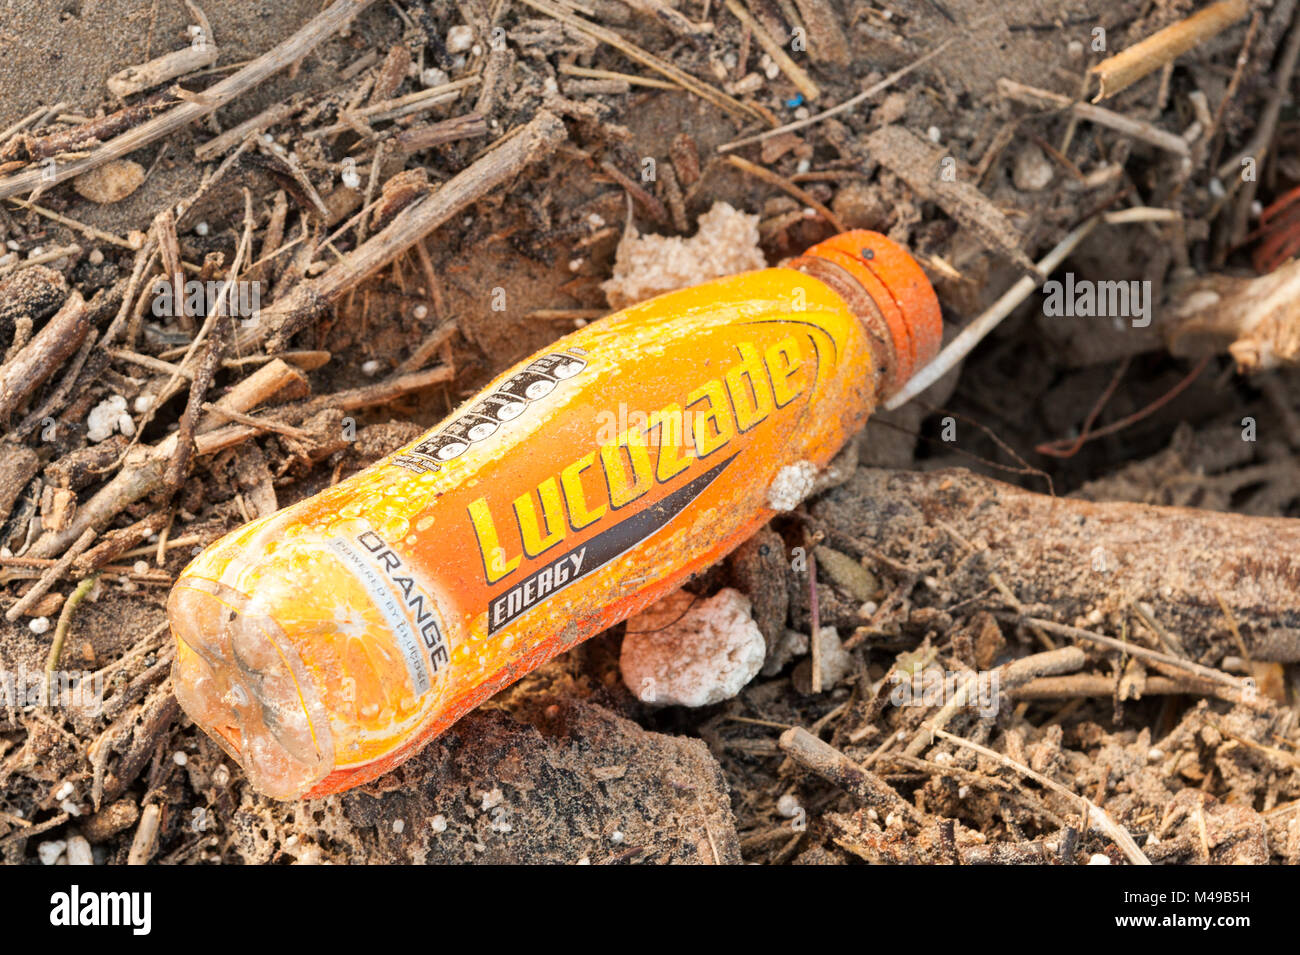 Detritus including a veriety of plastics washed up on Cefn Sidan, Pembrey. West Wales. UK. - Stock Image